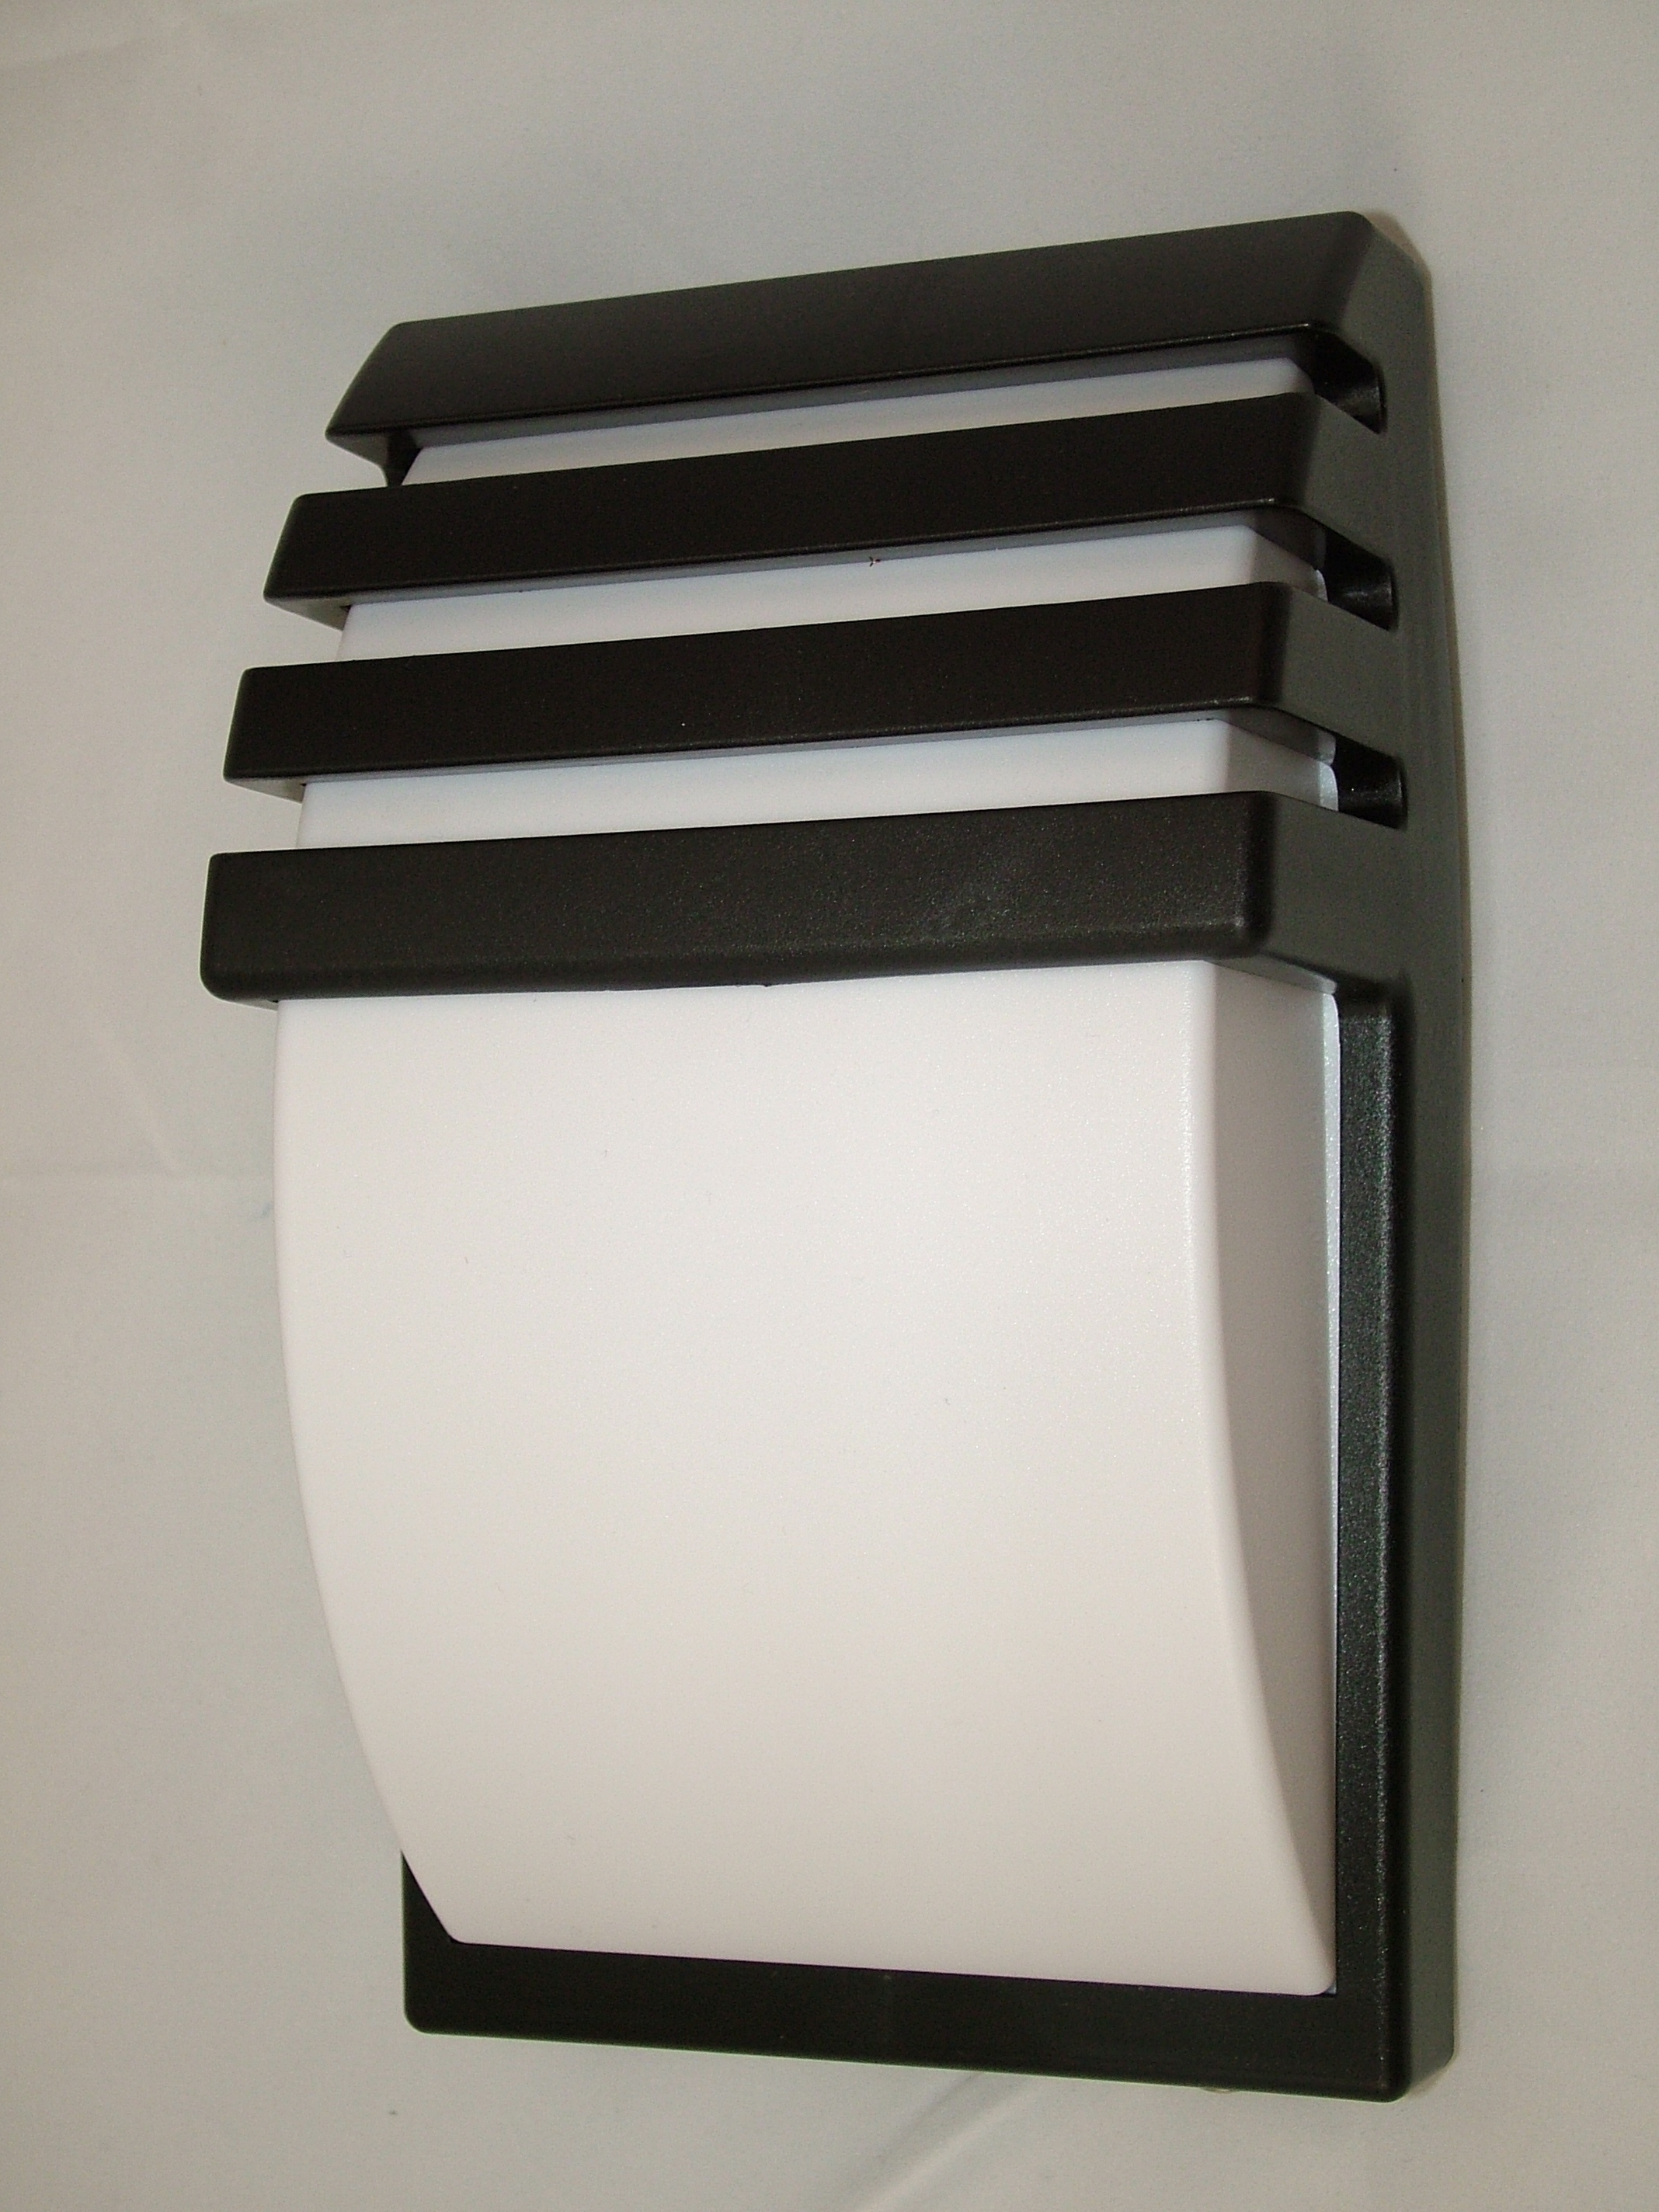 Large Outdoor Modern Wall Mounted Lighting Fixtures With Black Intended For Current Led Outdoor Wall Lighting (View 14 of 20)